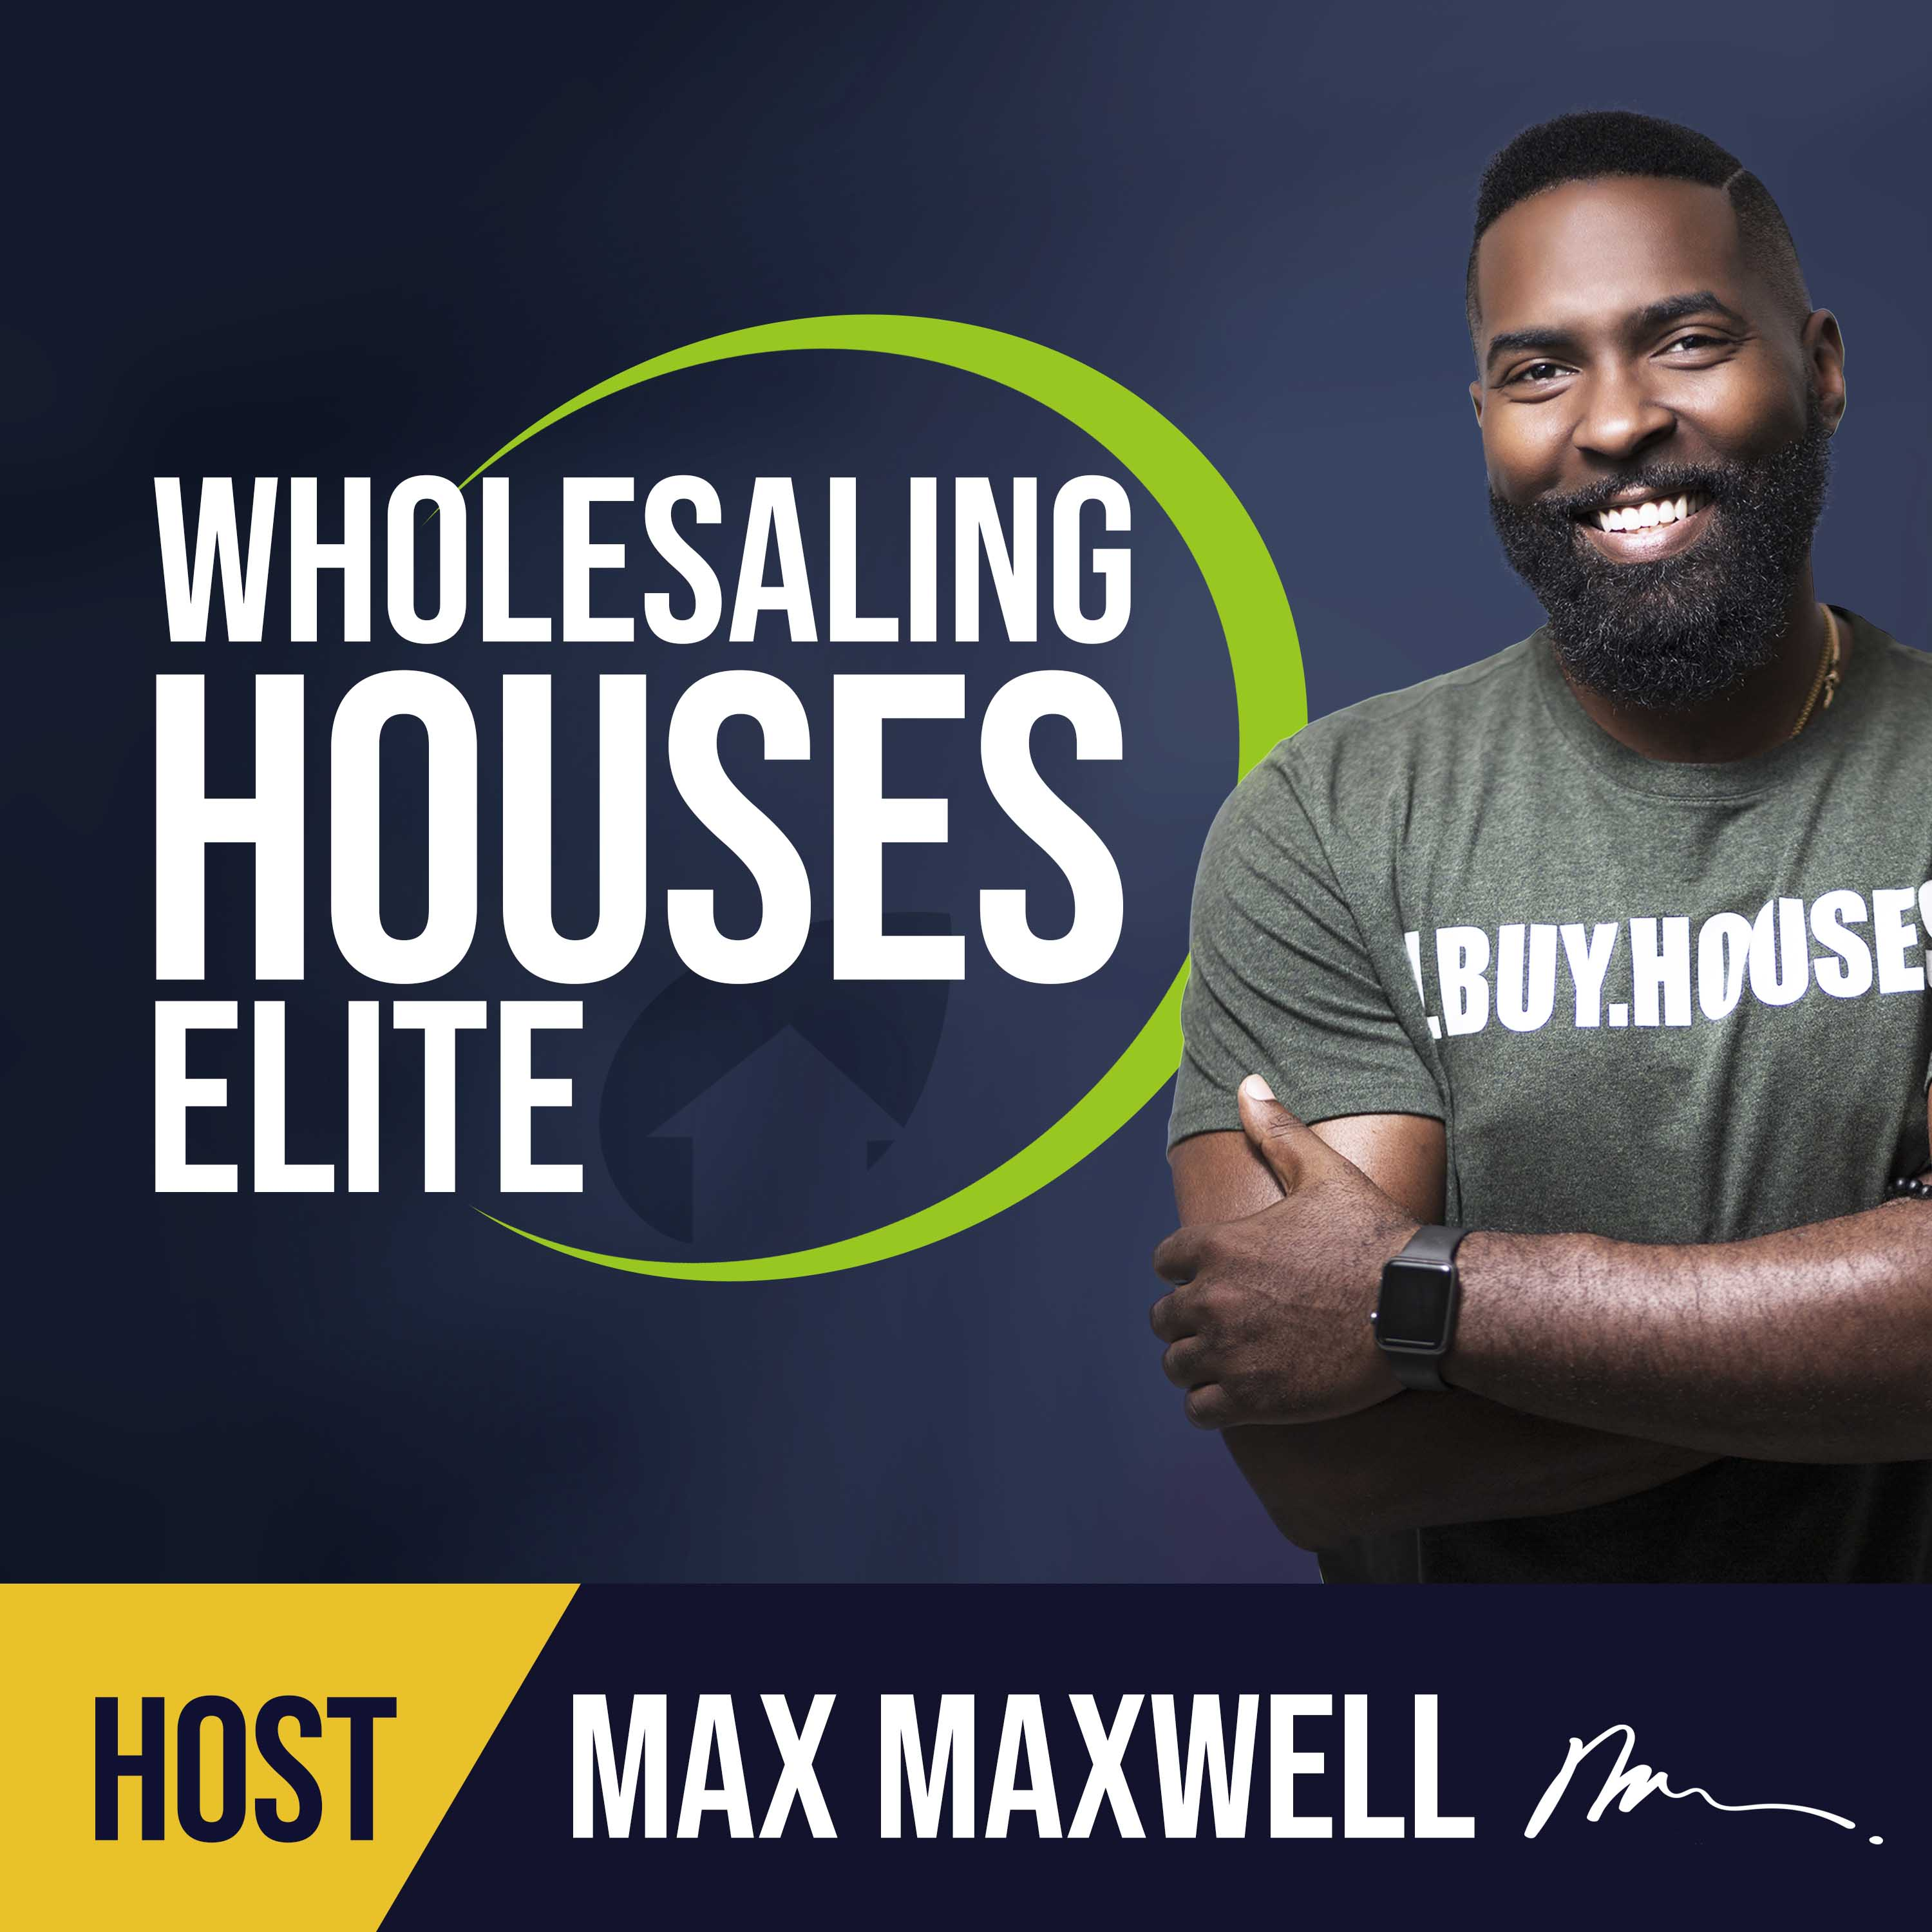 The hype in Wholesaling Real Estate